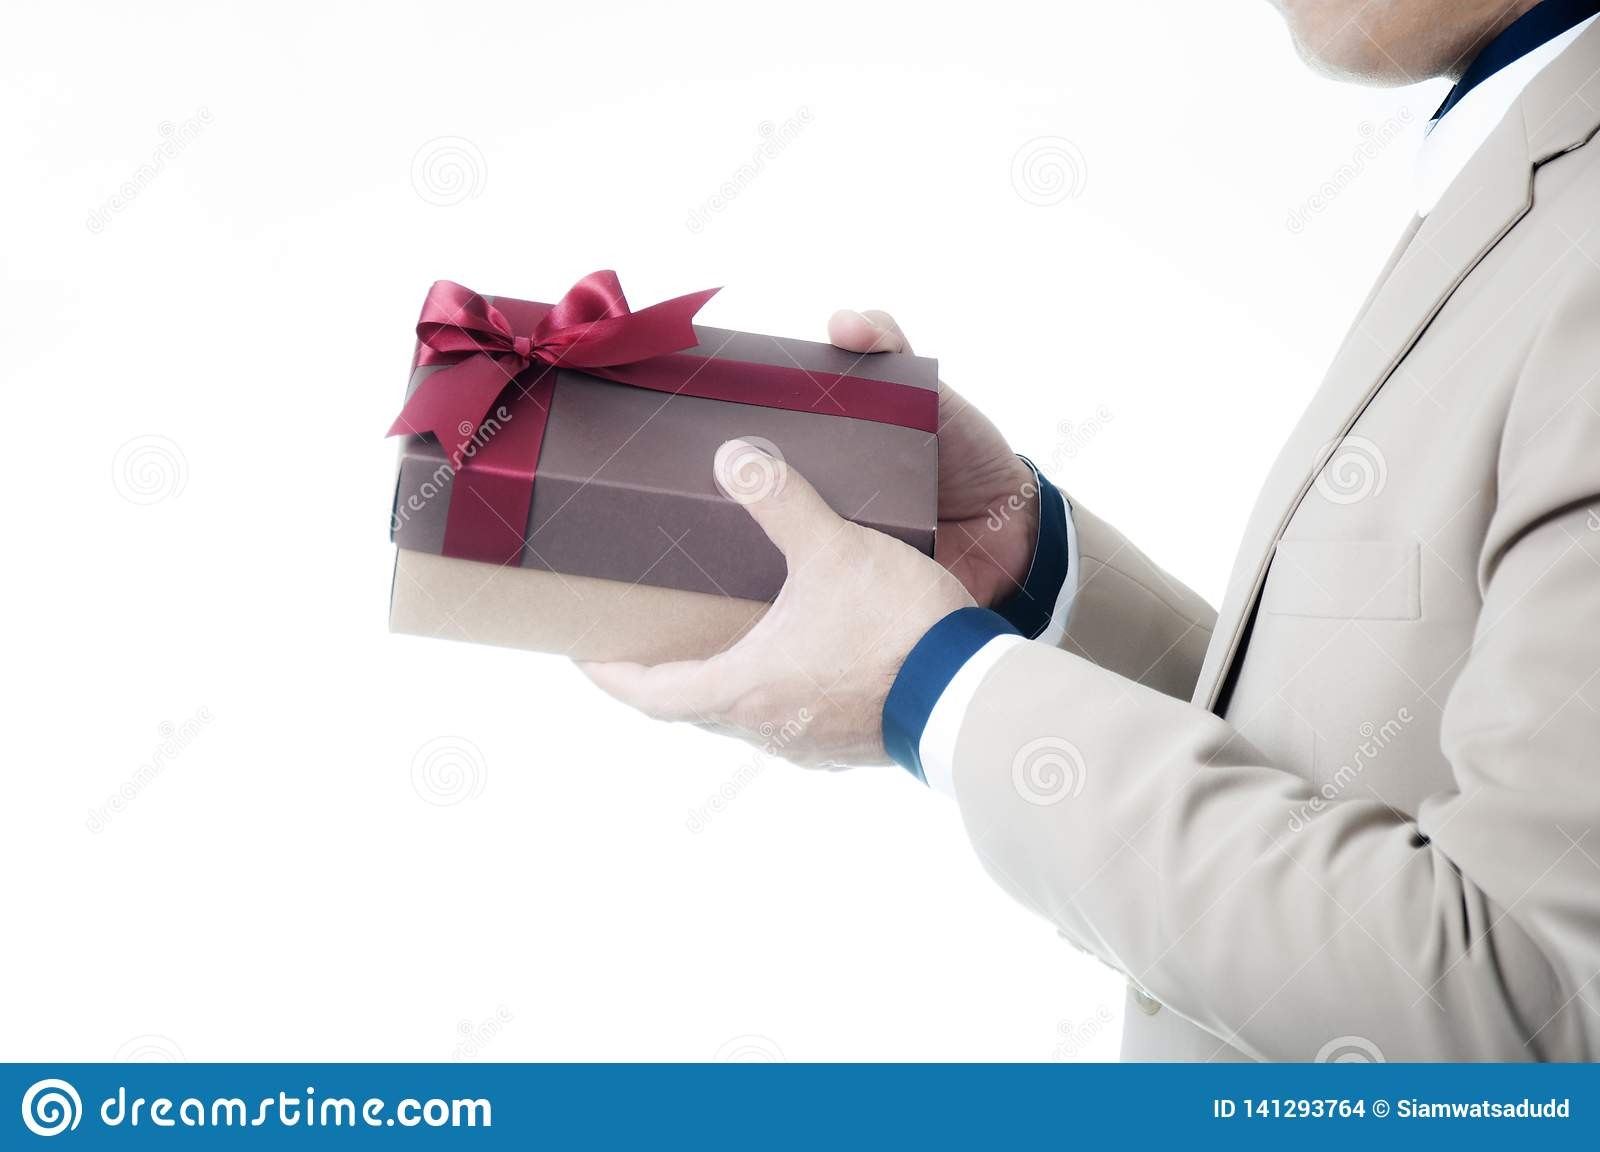 What to get a guy as a surprise gift